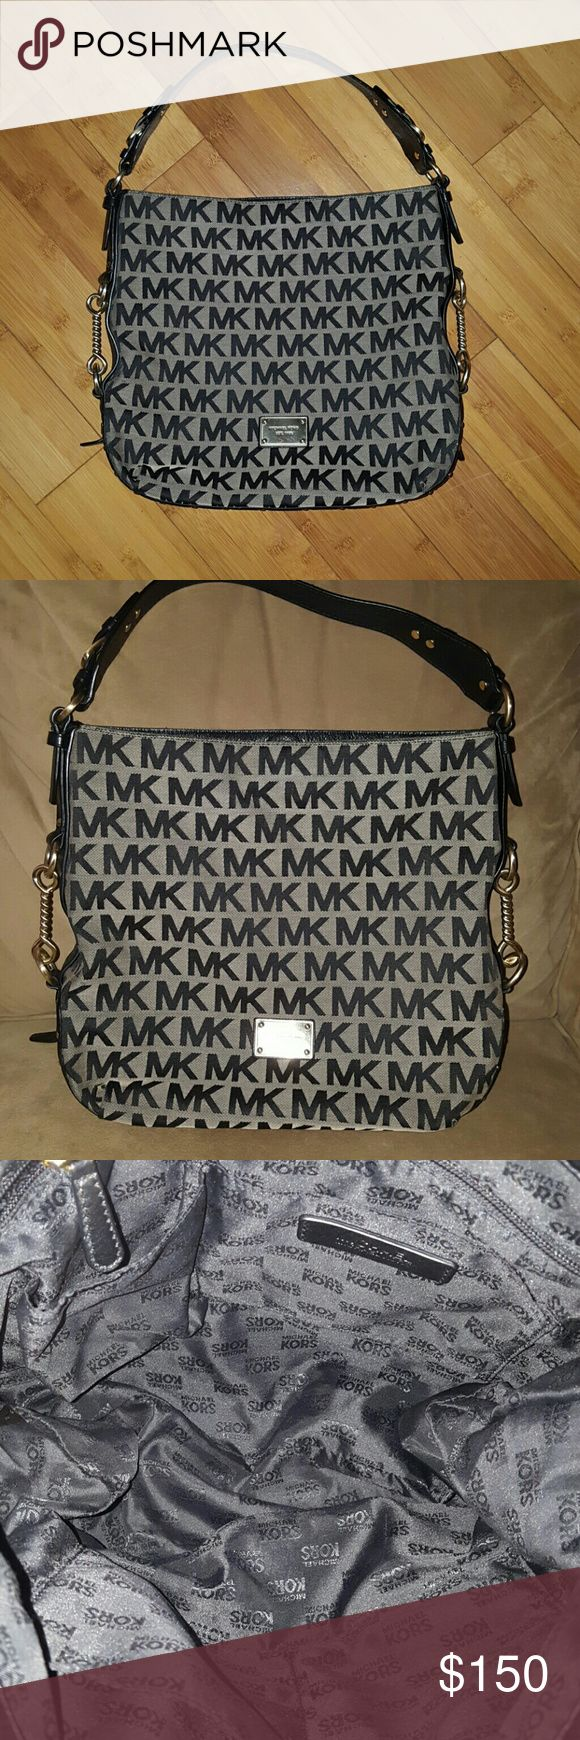 Michael Kors Signature Joplin Black Shoulder Bag Gorgeous bag from Michael Kors in black. Leather trim. Brushed silver hardware.  Center magnetic closure with large inside.  Plate has a few minor scuffs. Corners have a little wear. See pic 4.  Inside is beautiful with a zipper pocket and 4 small pockets.  Exterior and Interior has been professionally cleaned. Michael Kors Bags Shoulder Bags